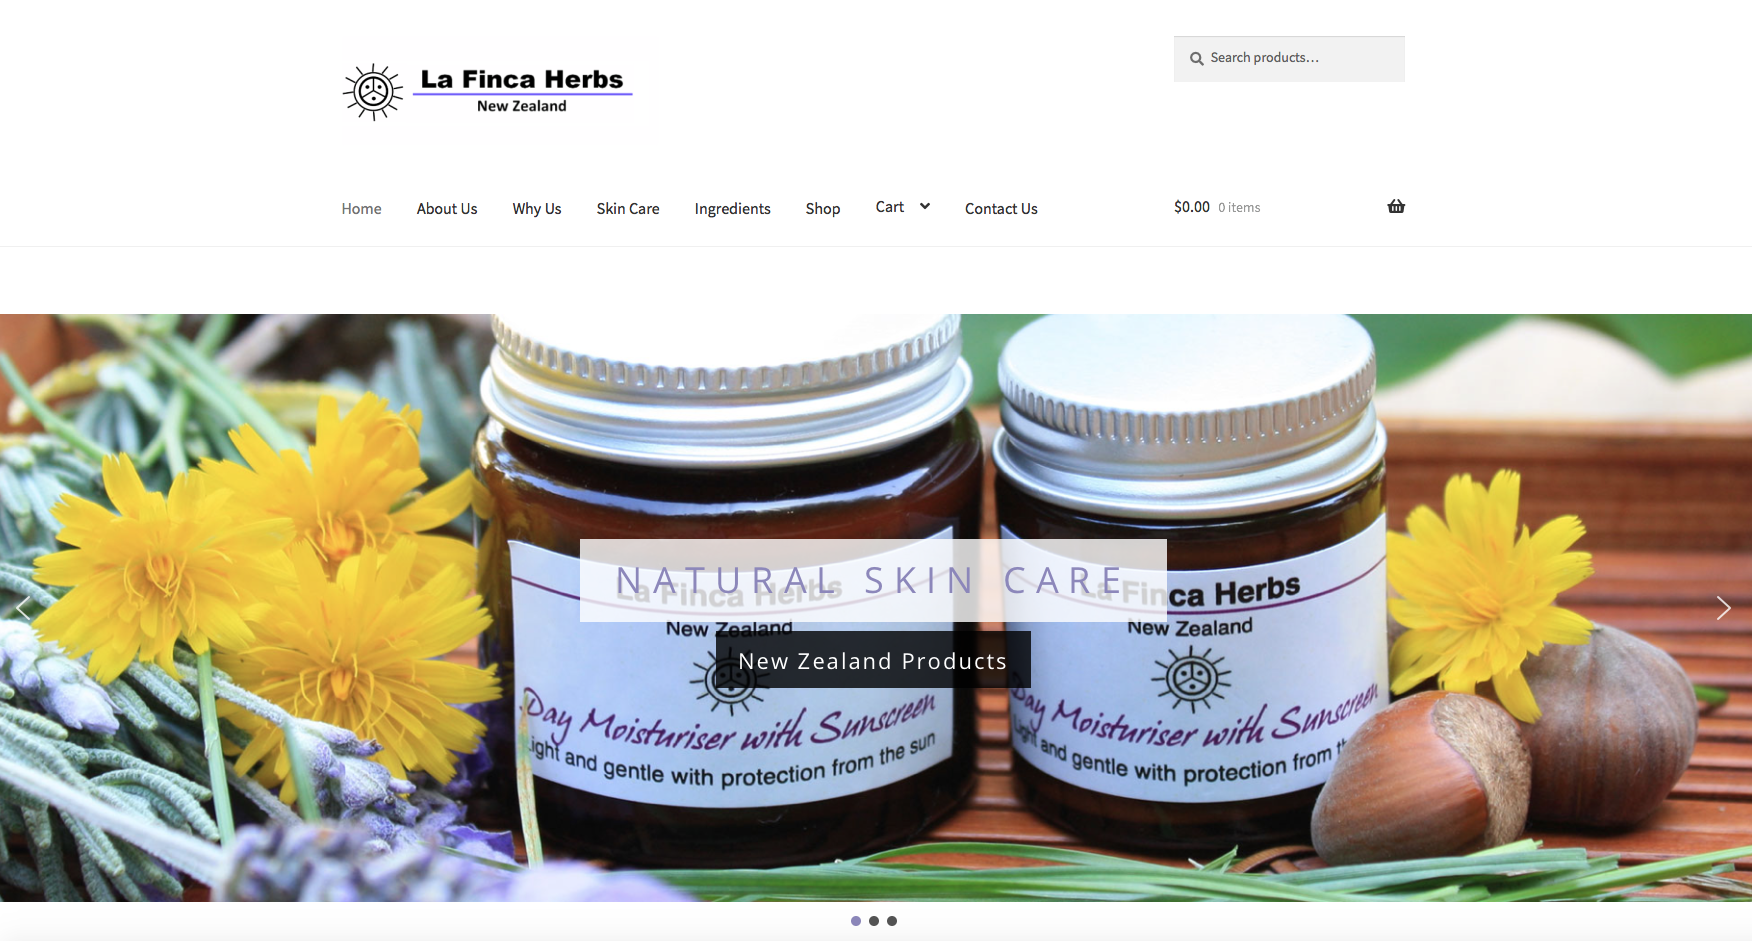 La Finca Herbs NZ website design